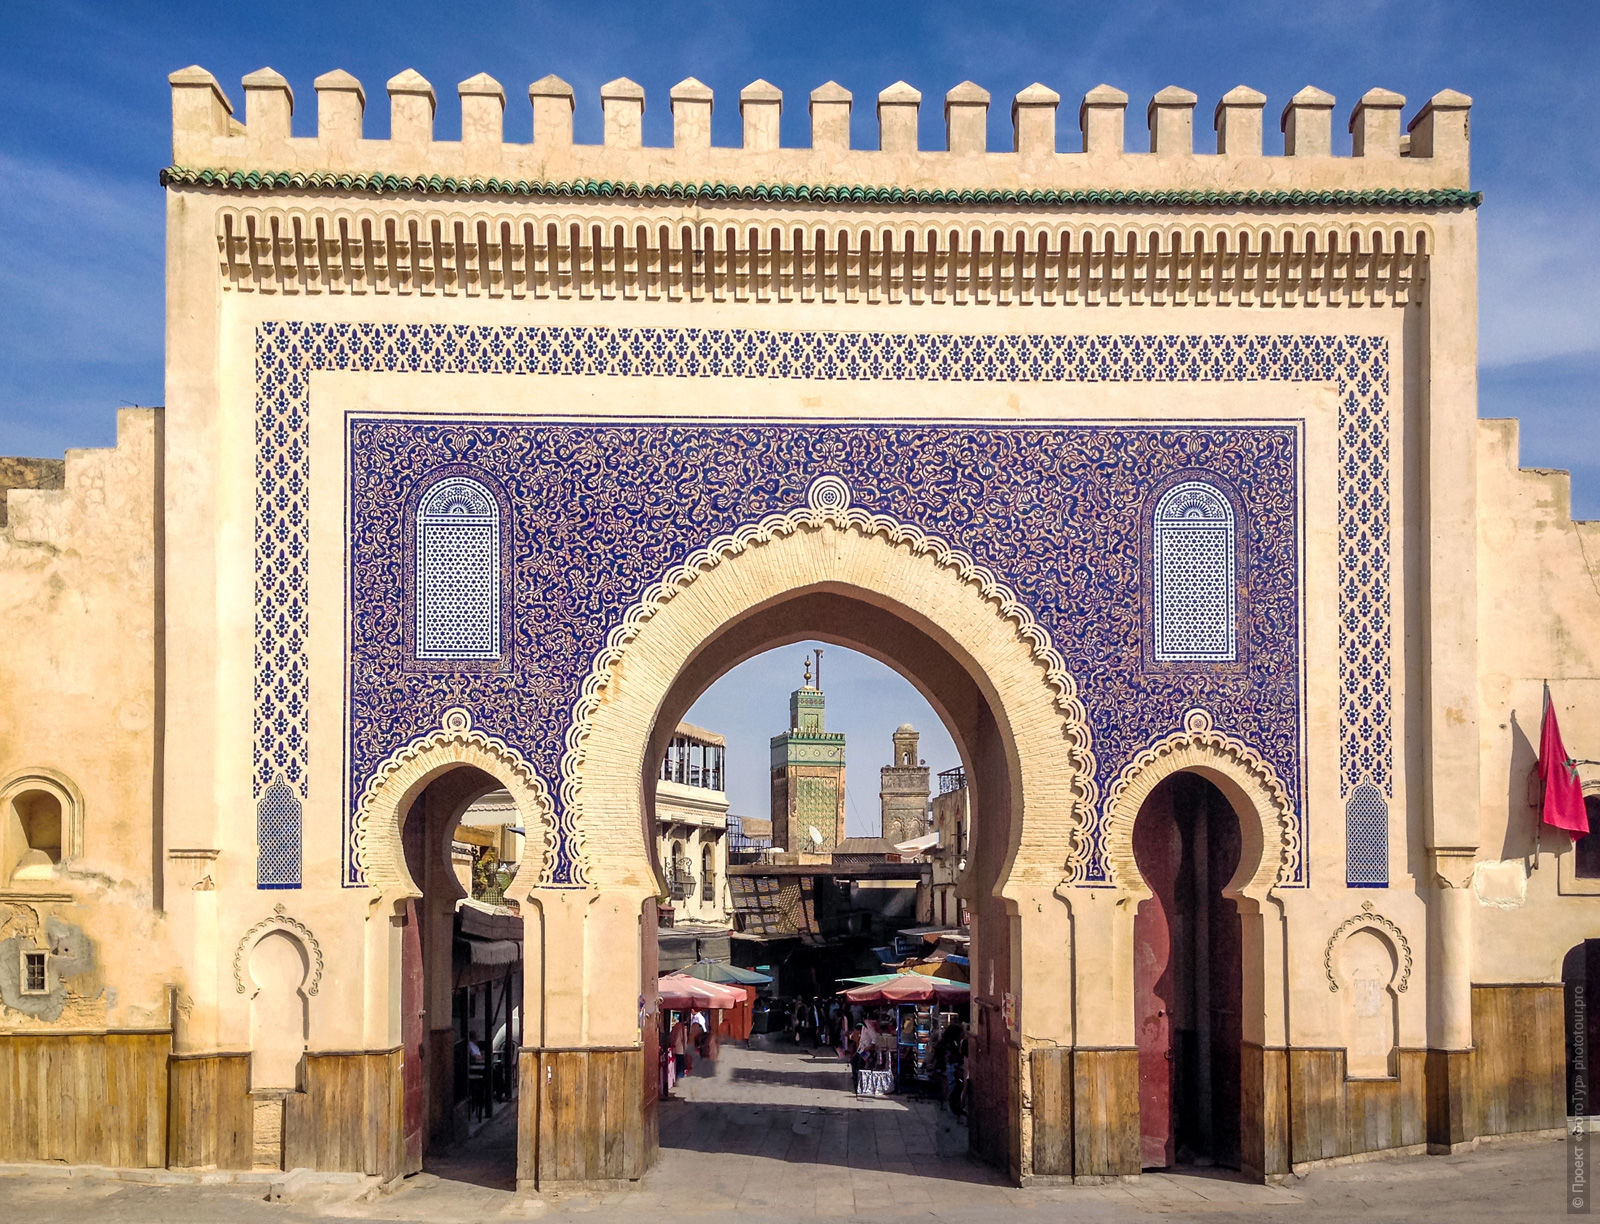 Gate to the Medina of Fes el Bali, Morocco, photo tour of Morocco, October 2018.